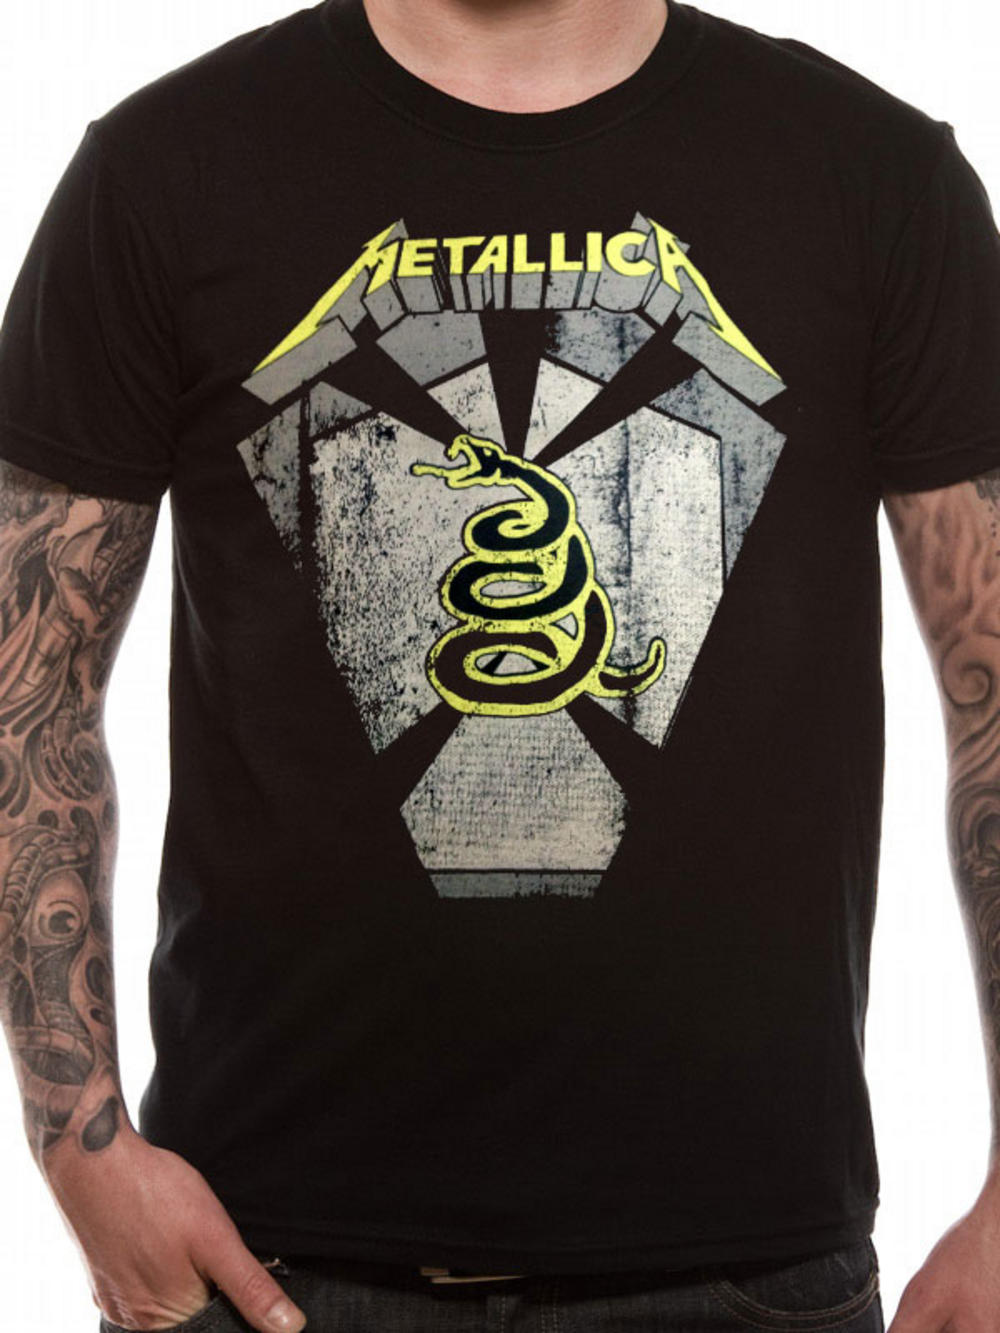 metallica pit boss t shirt buy metallica pit boss t. Black Bedroom Furniture Sets. Home Design Ideas